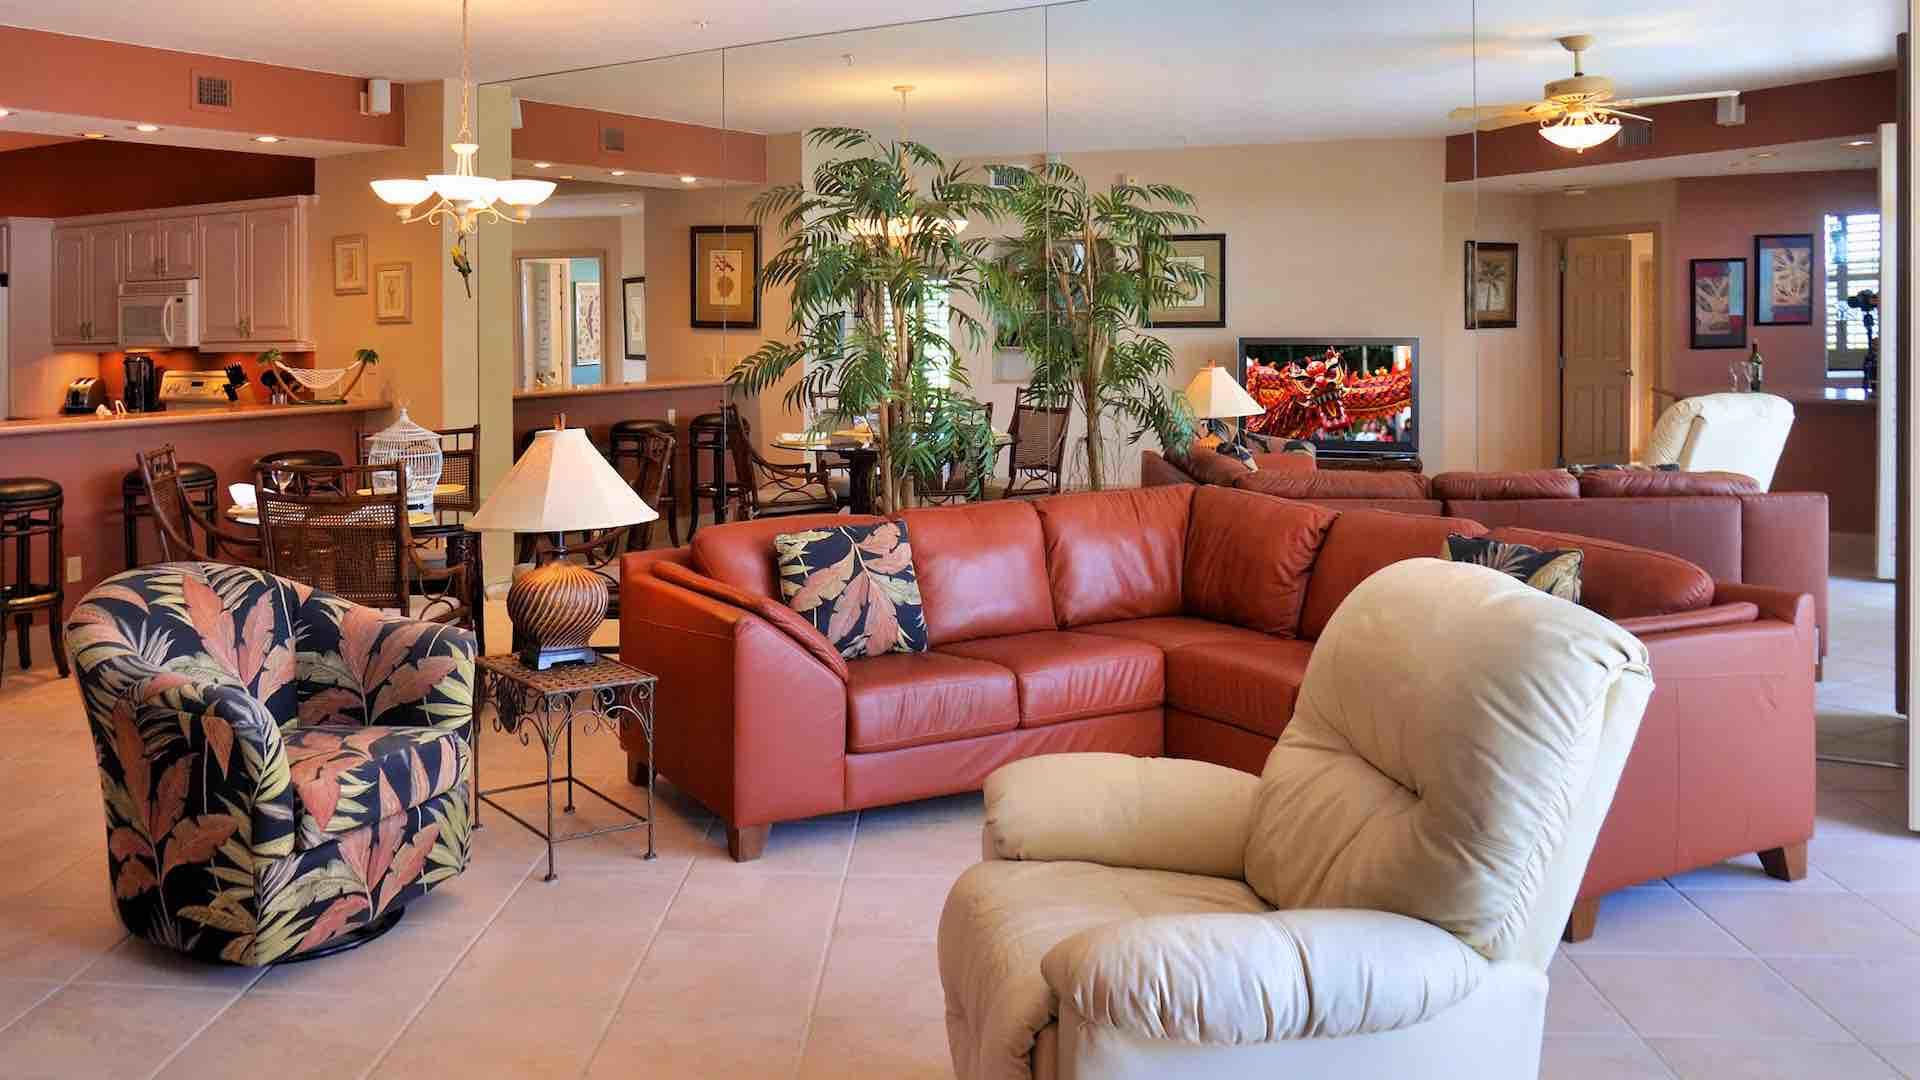 The living room has comfortable seating options, including a large sectional sofa...